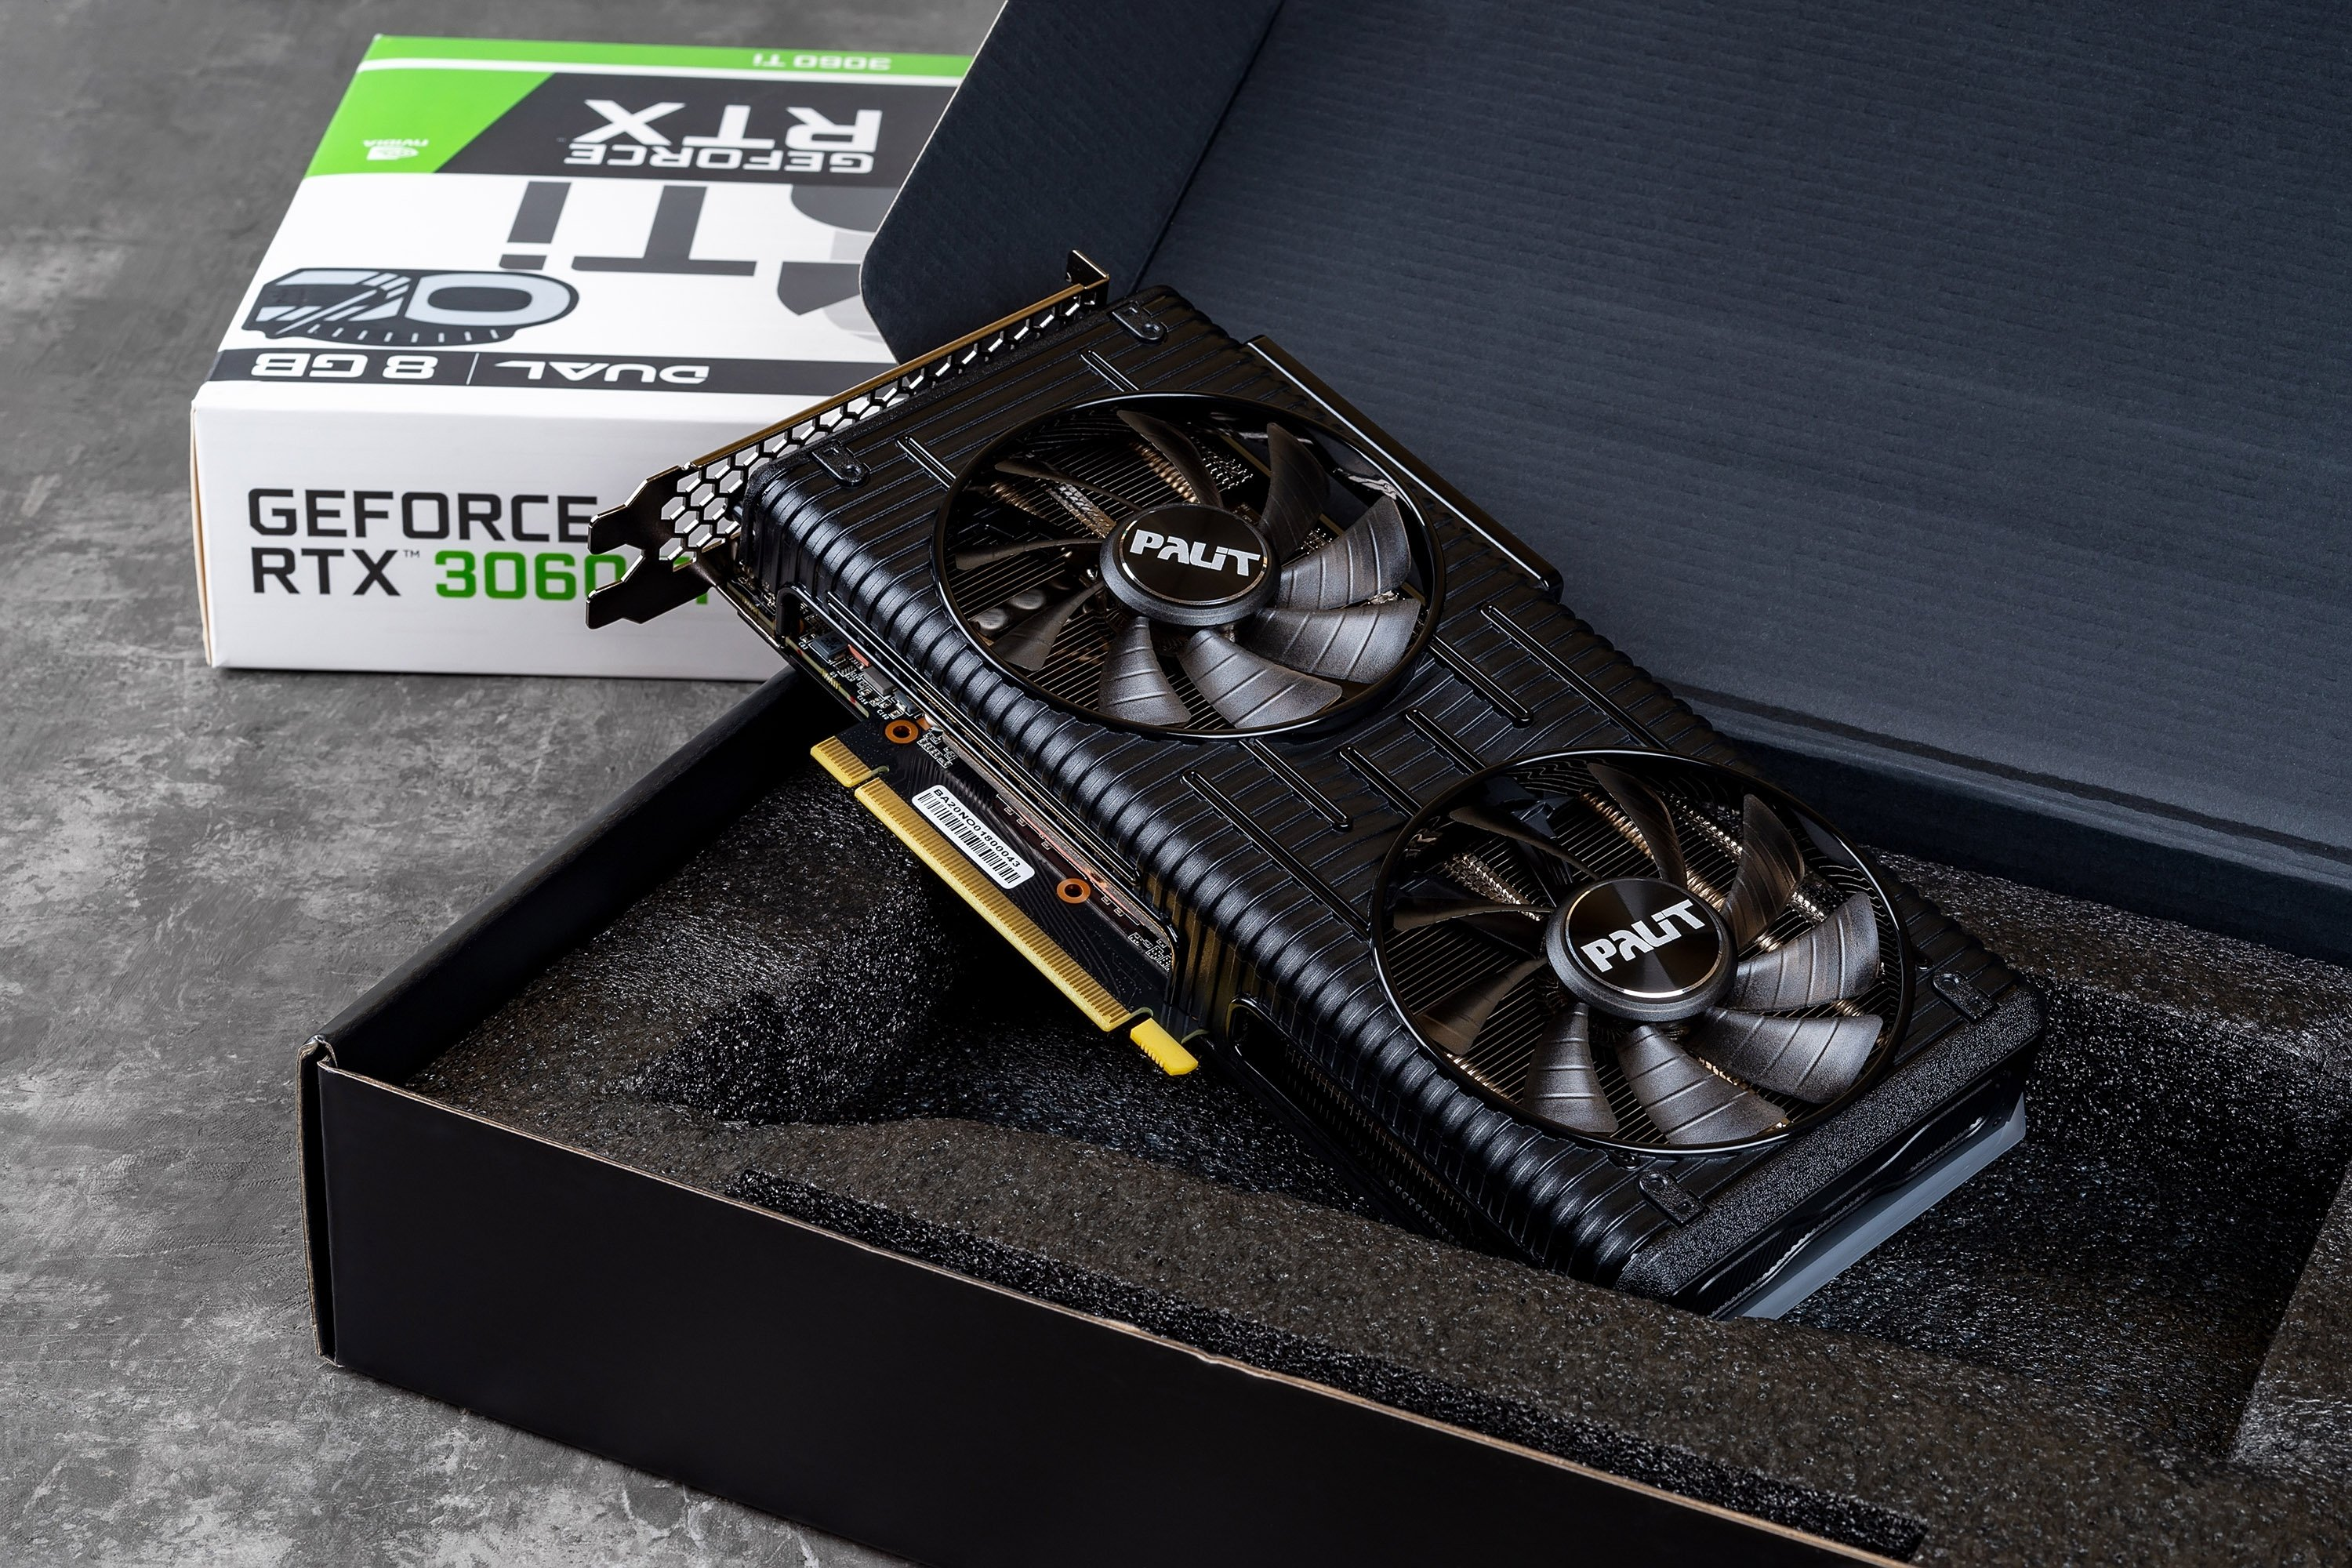 Photo shows Nvidia Geforce RTX 3060 Ti Dual OC gaming graphics card in Varna, Bulgaria, January 11, 2021. (Shutterstock Photo)